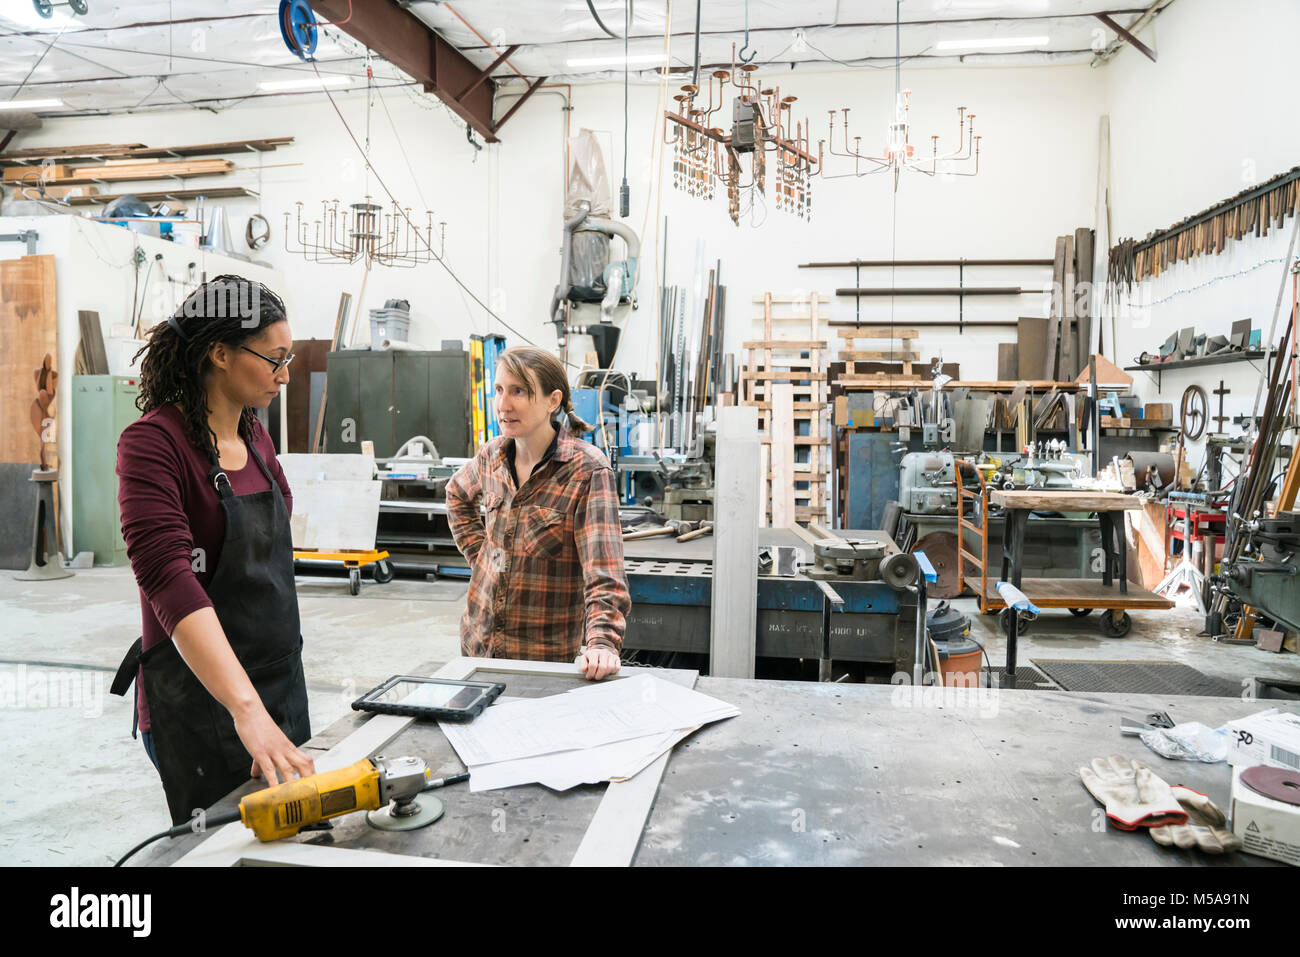 Two women standing at workbench in metal workshop. - Stock Image